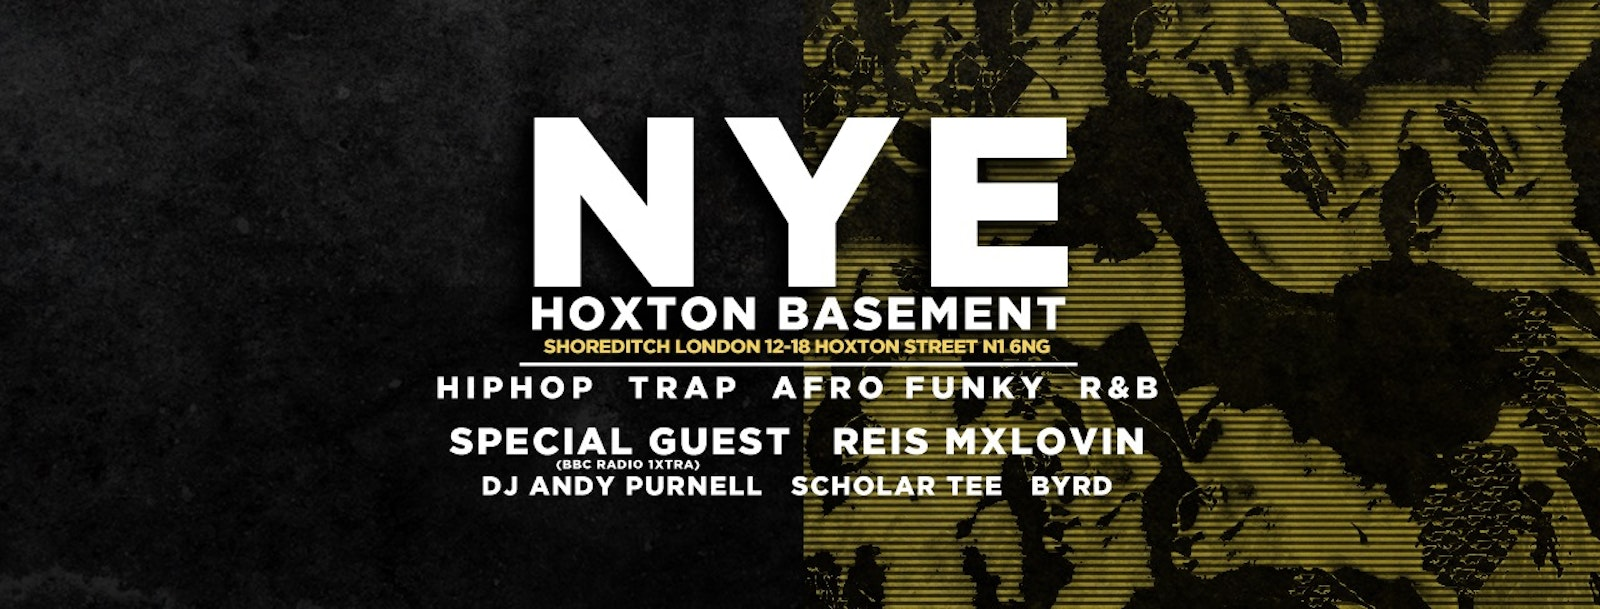 Hoxton Basement New Years Eve – Hip Hop x Trap x Afro x Funky | Tickets Out Now!